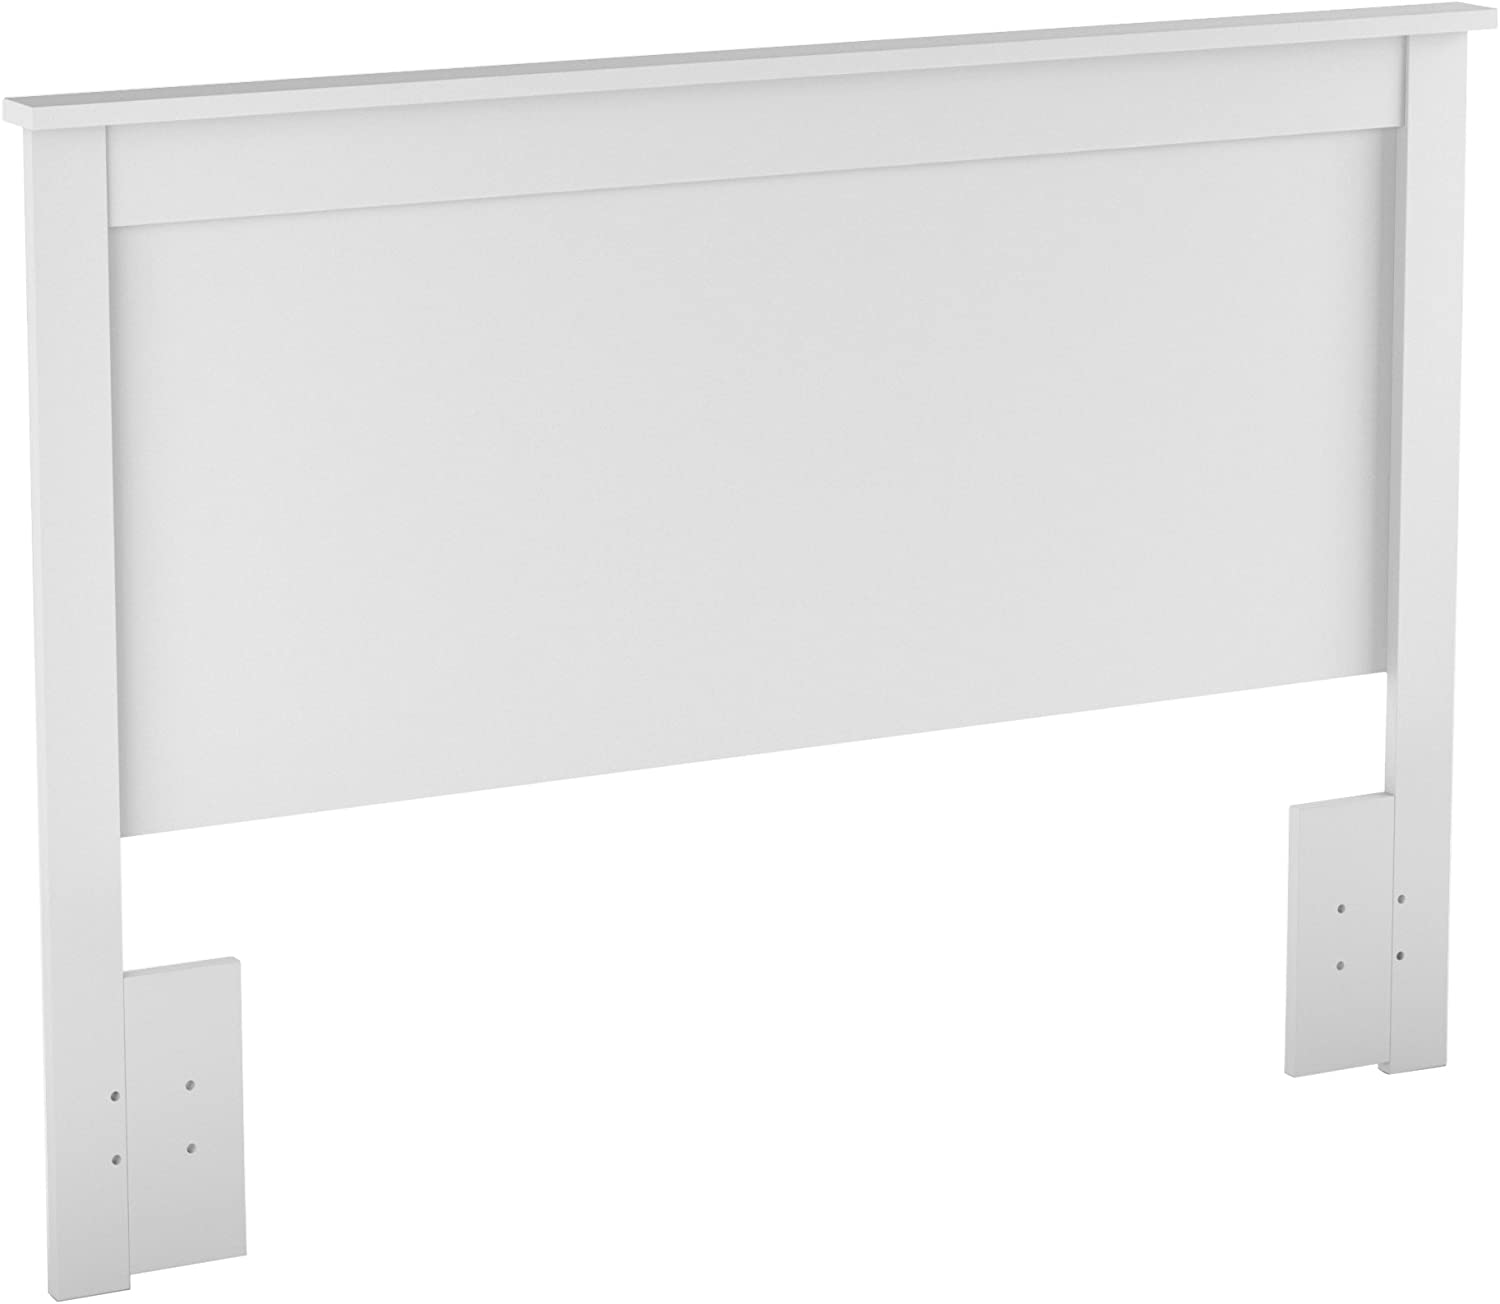 South Shore Furniture Vito Collection, 54 by 60-Inch Full Queen Headboard, Pure White